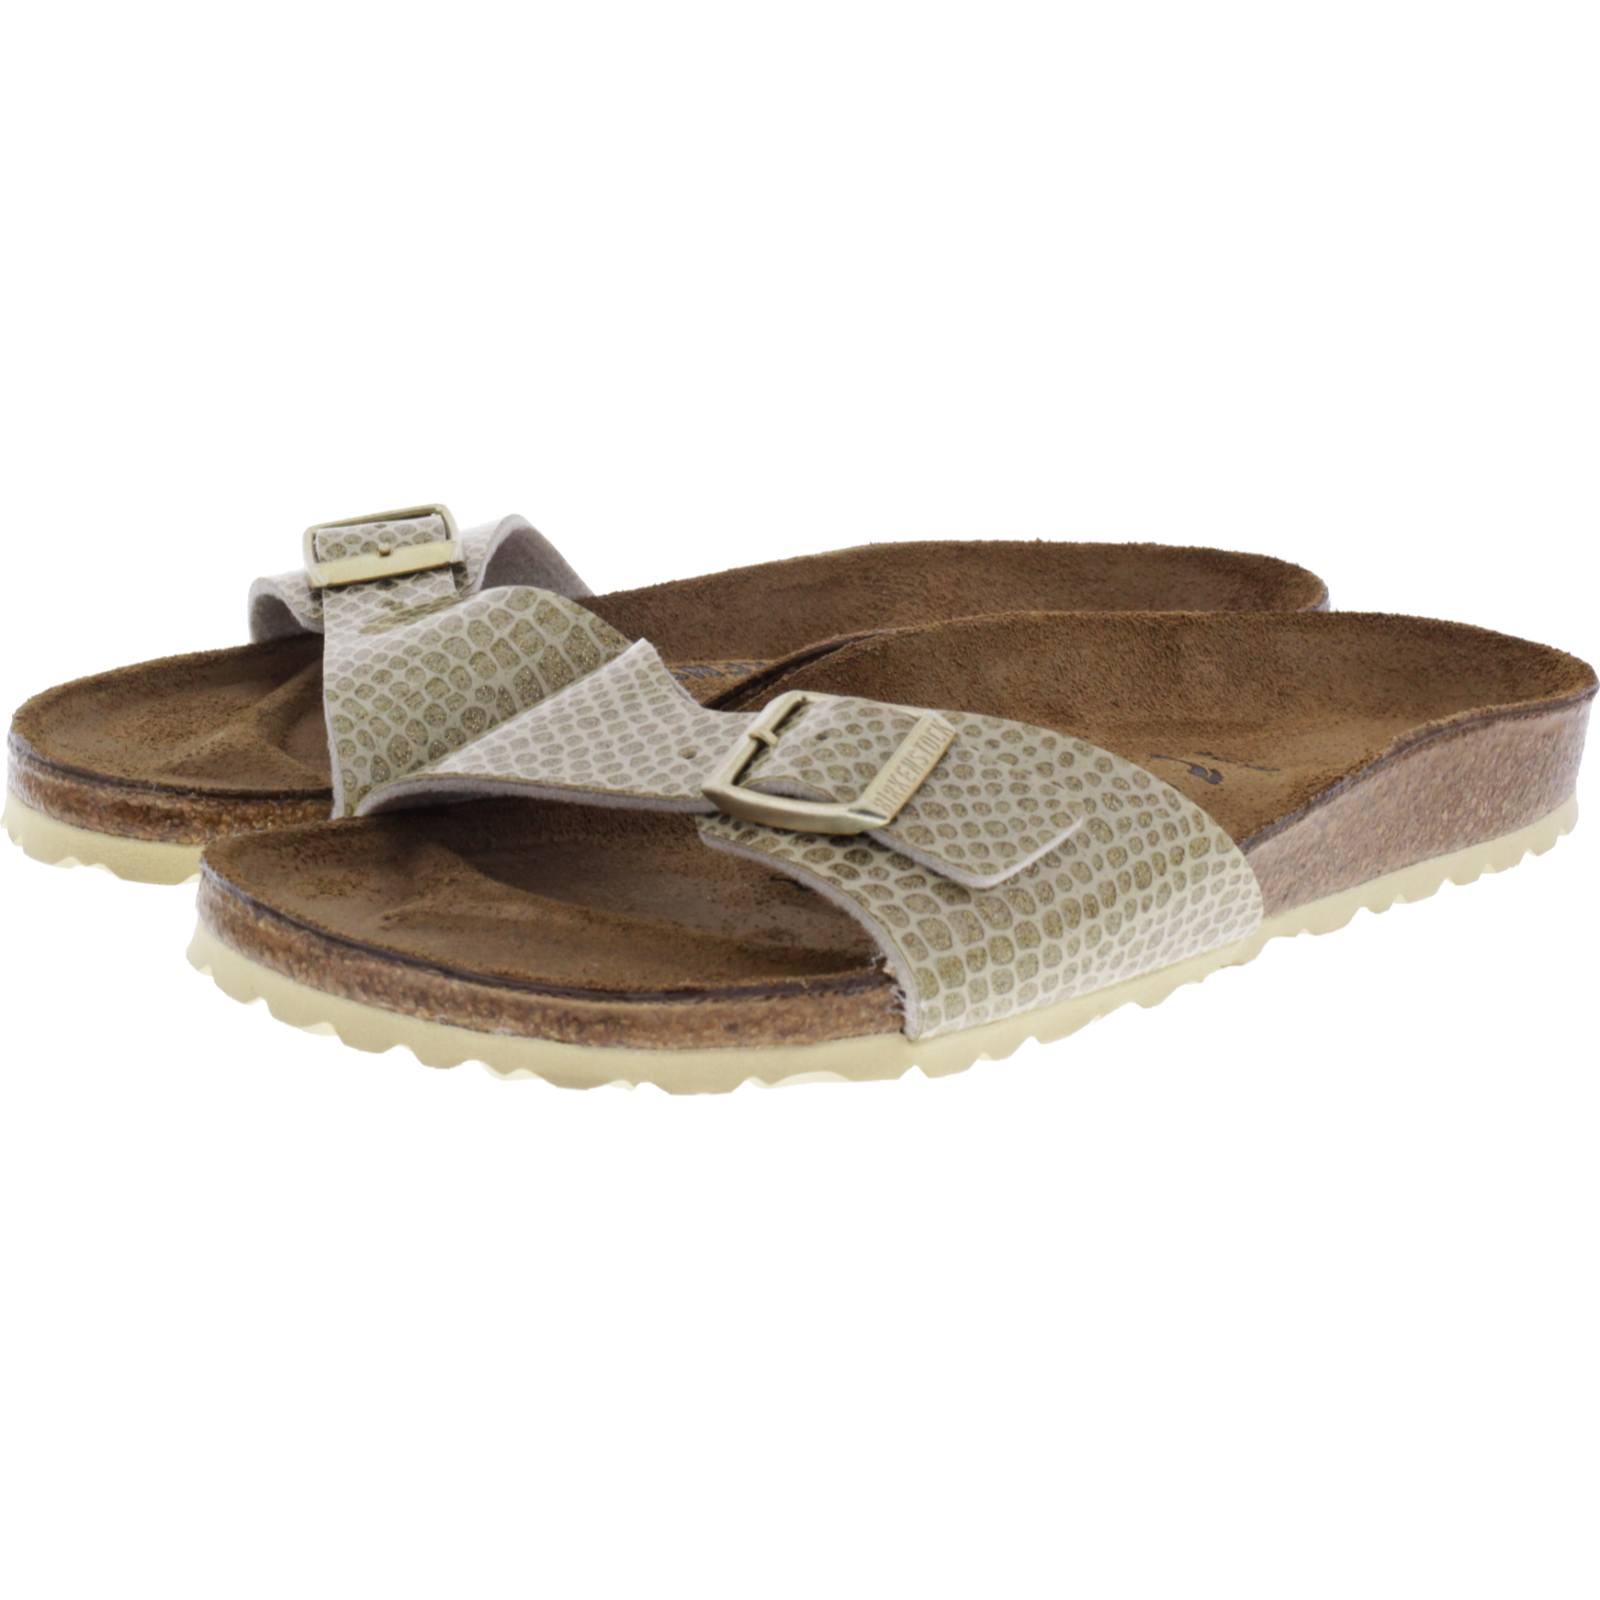 Birkenstock Modell: Madrid Magic Snake Gold Weite: Schmal Art: 1011755